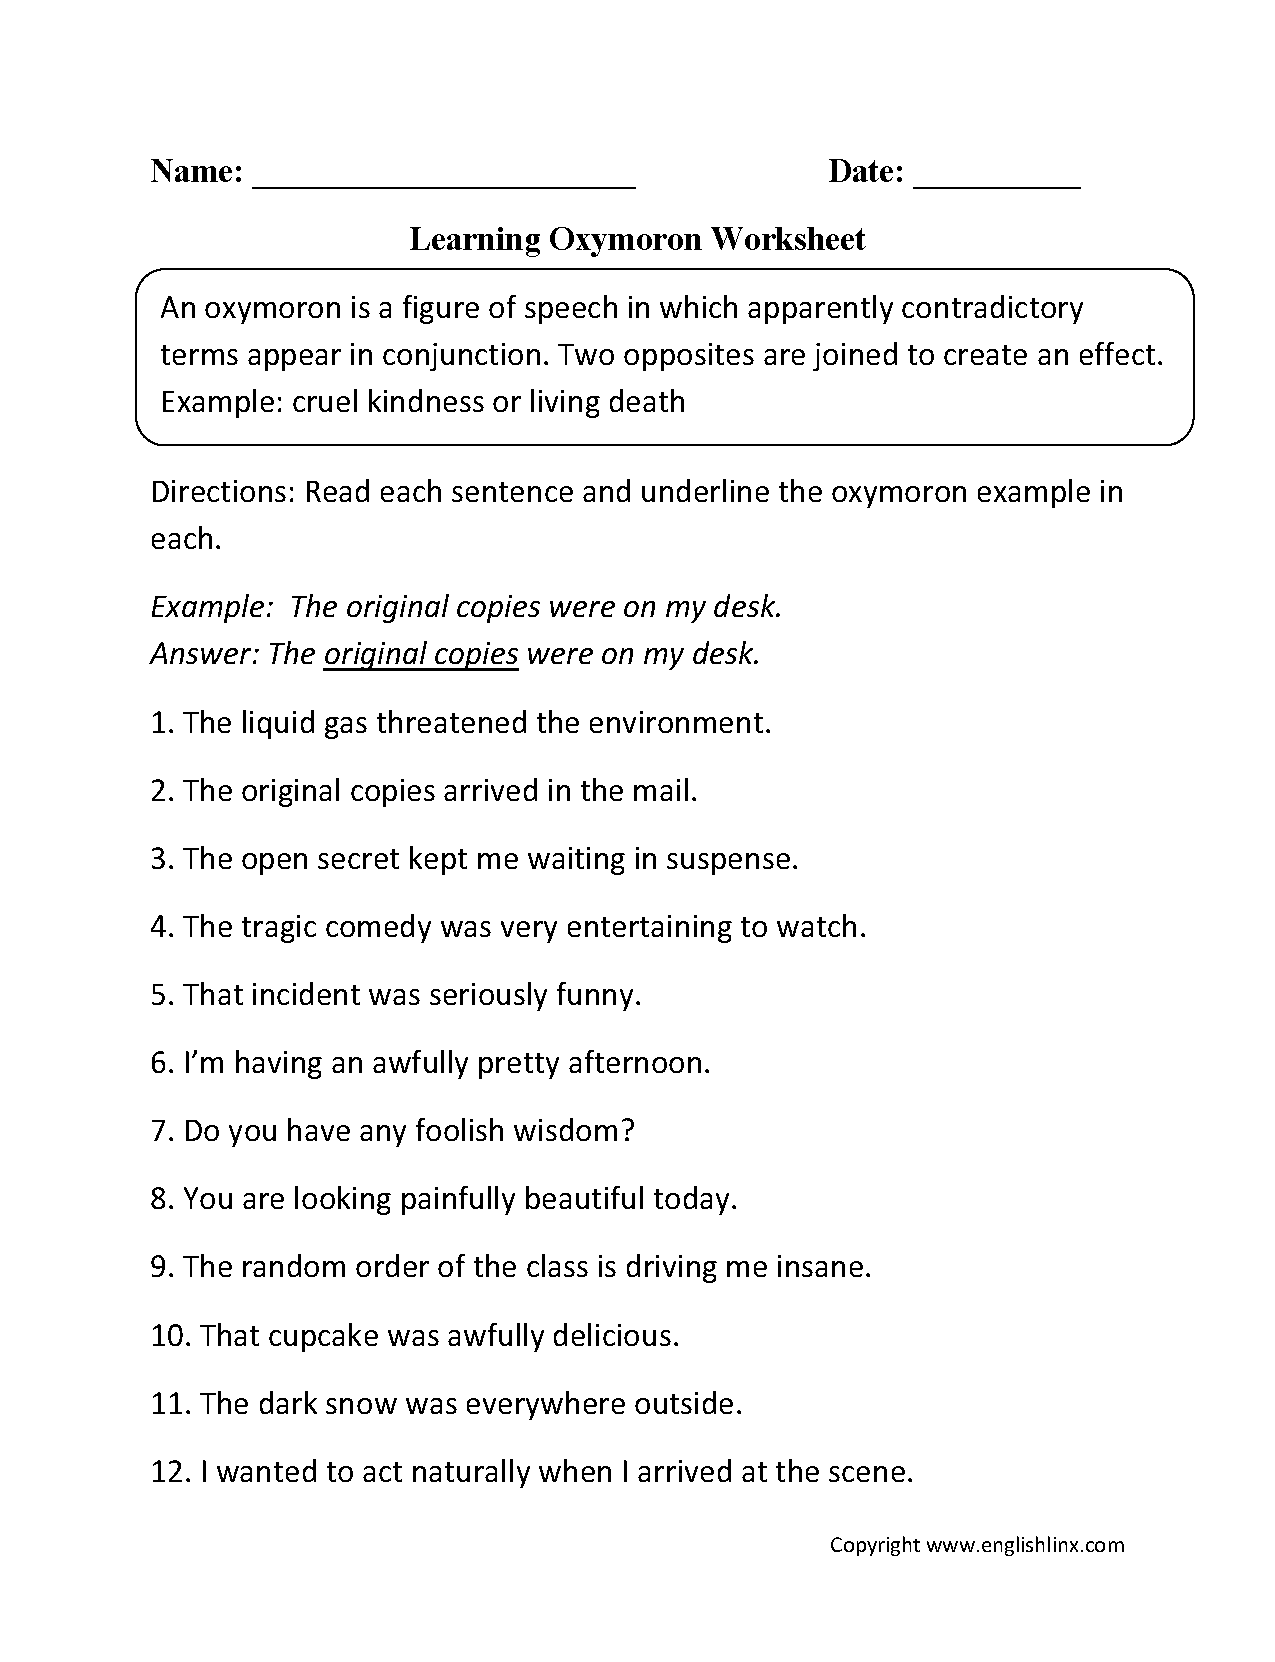 Free Worksheet Homophones Worksheet 5th Grade englishlinx com homophones worksheets board oxymoron figurative language worksheets